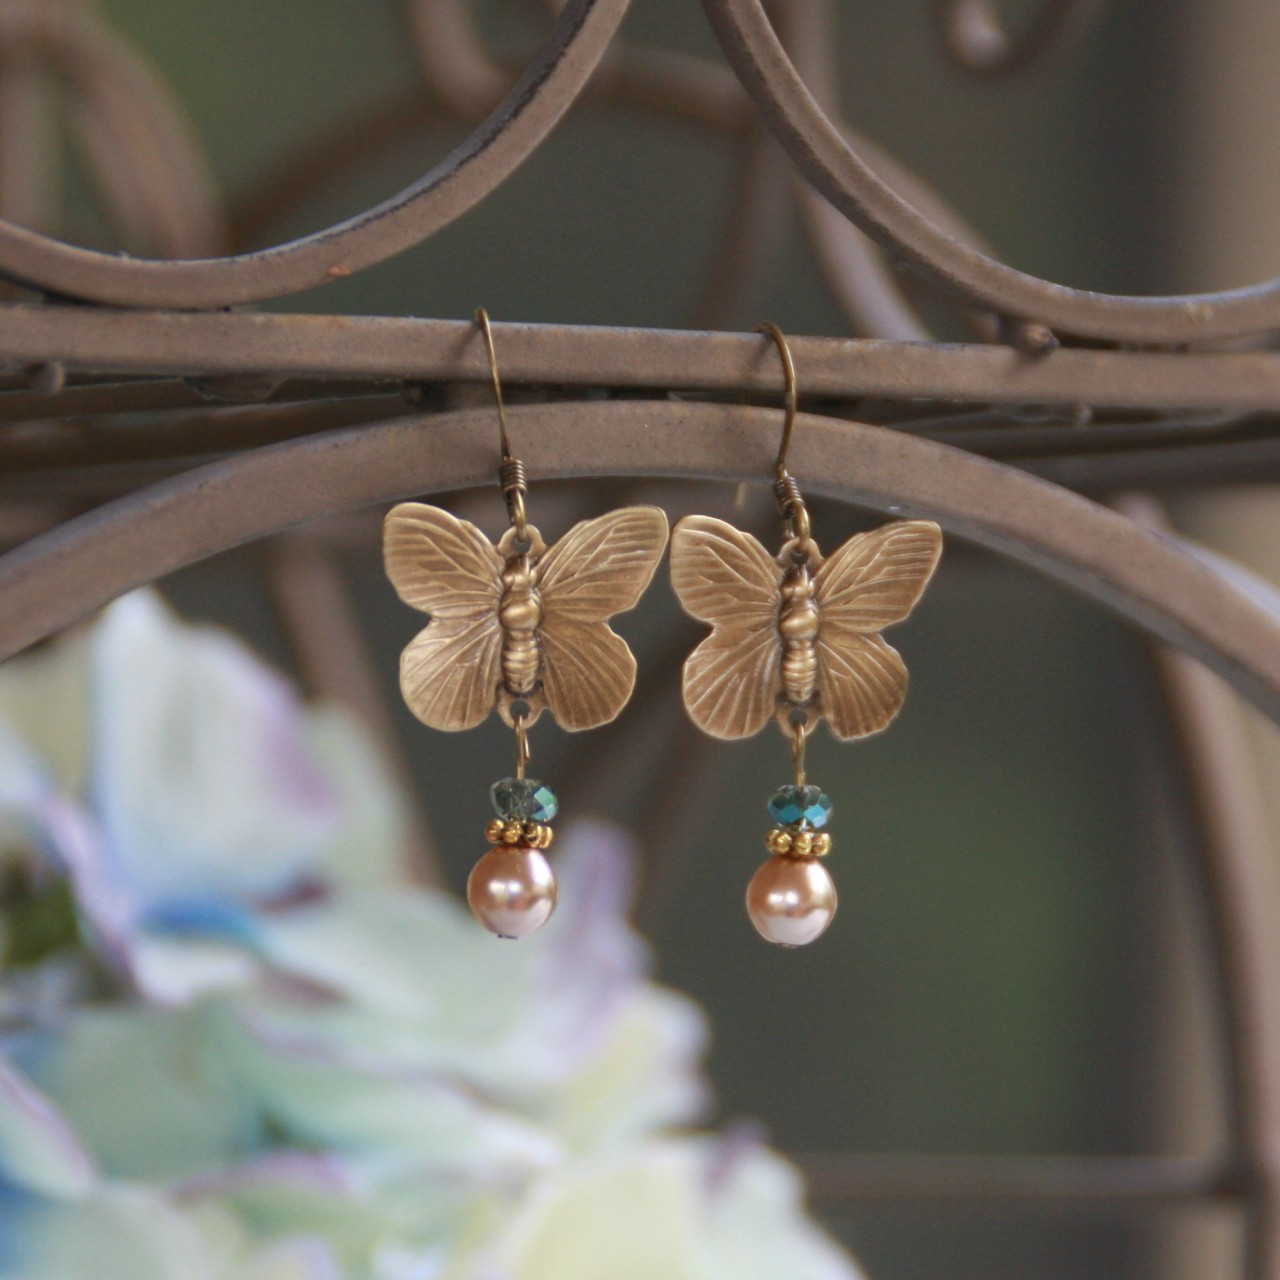 IS-560 Butterfly Vintage Style Earrings with Pearls